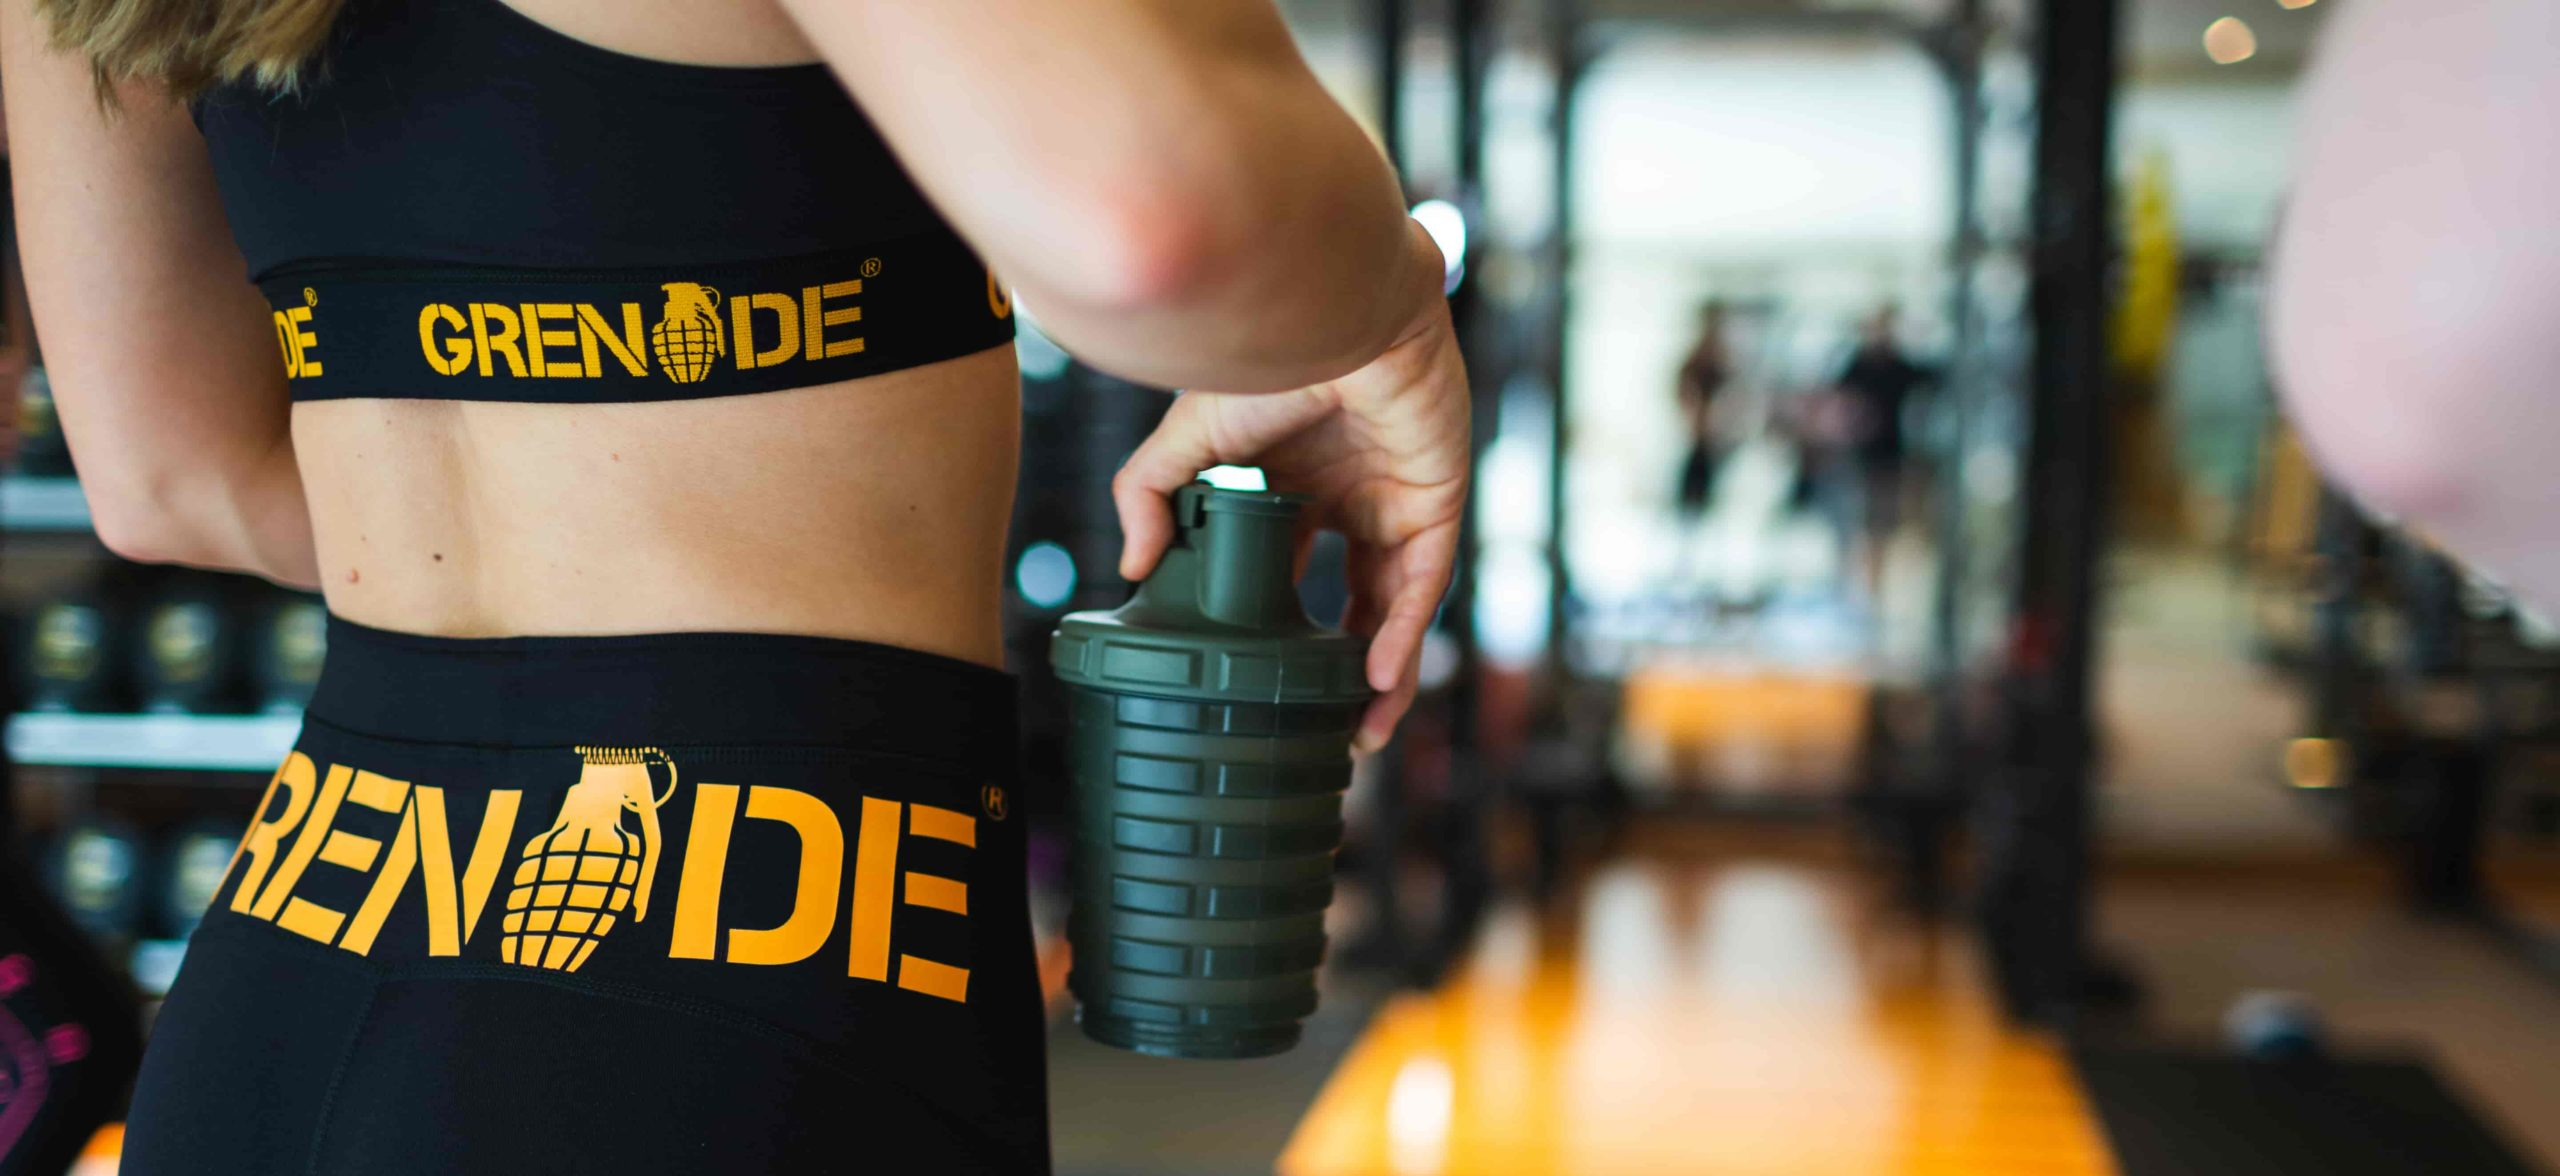 What to use in the gym